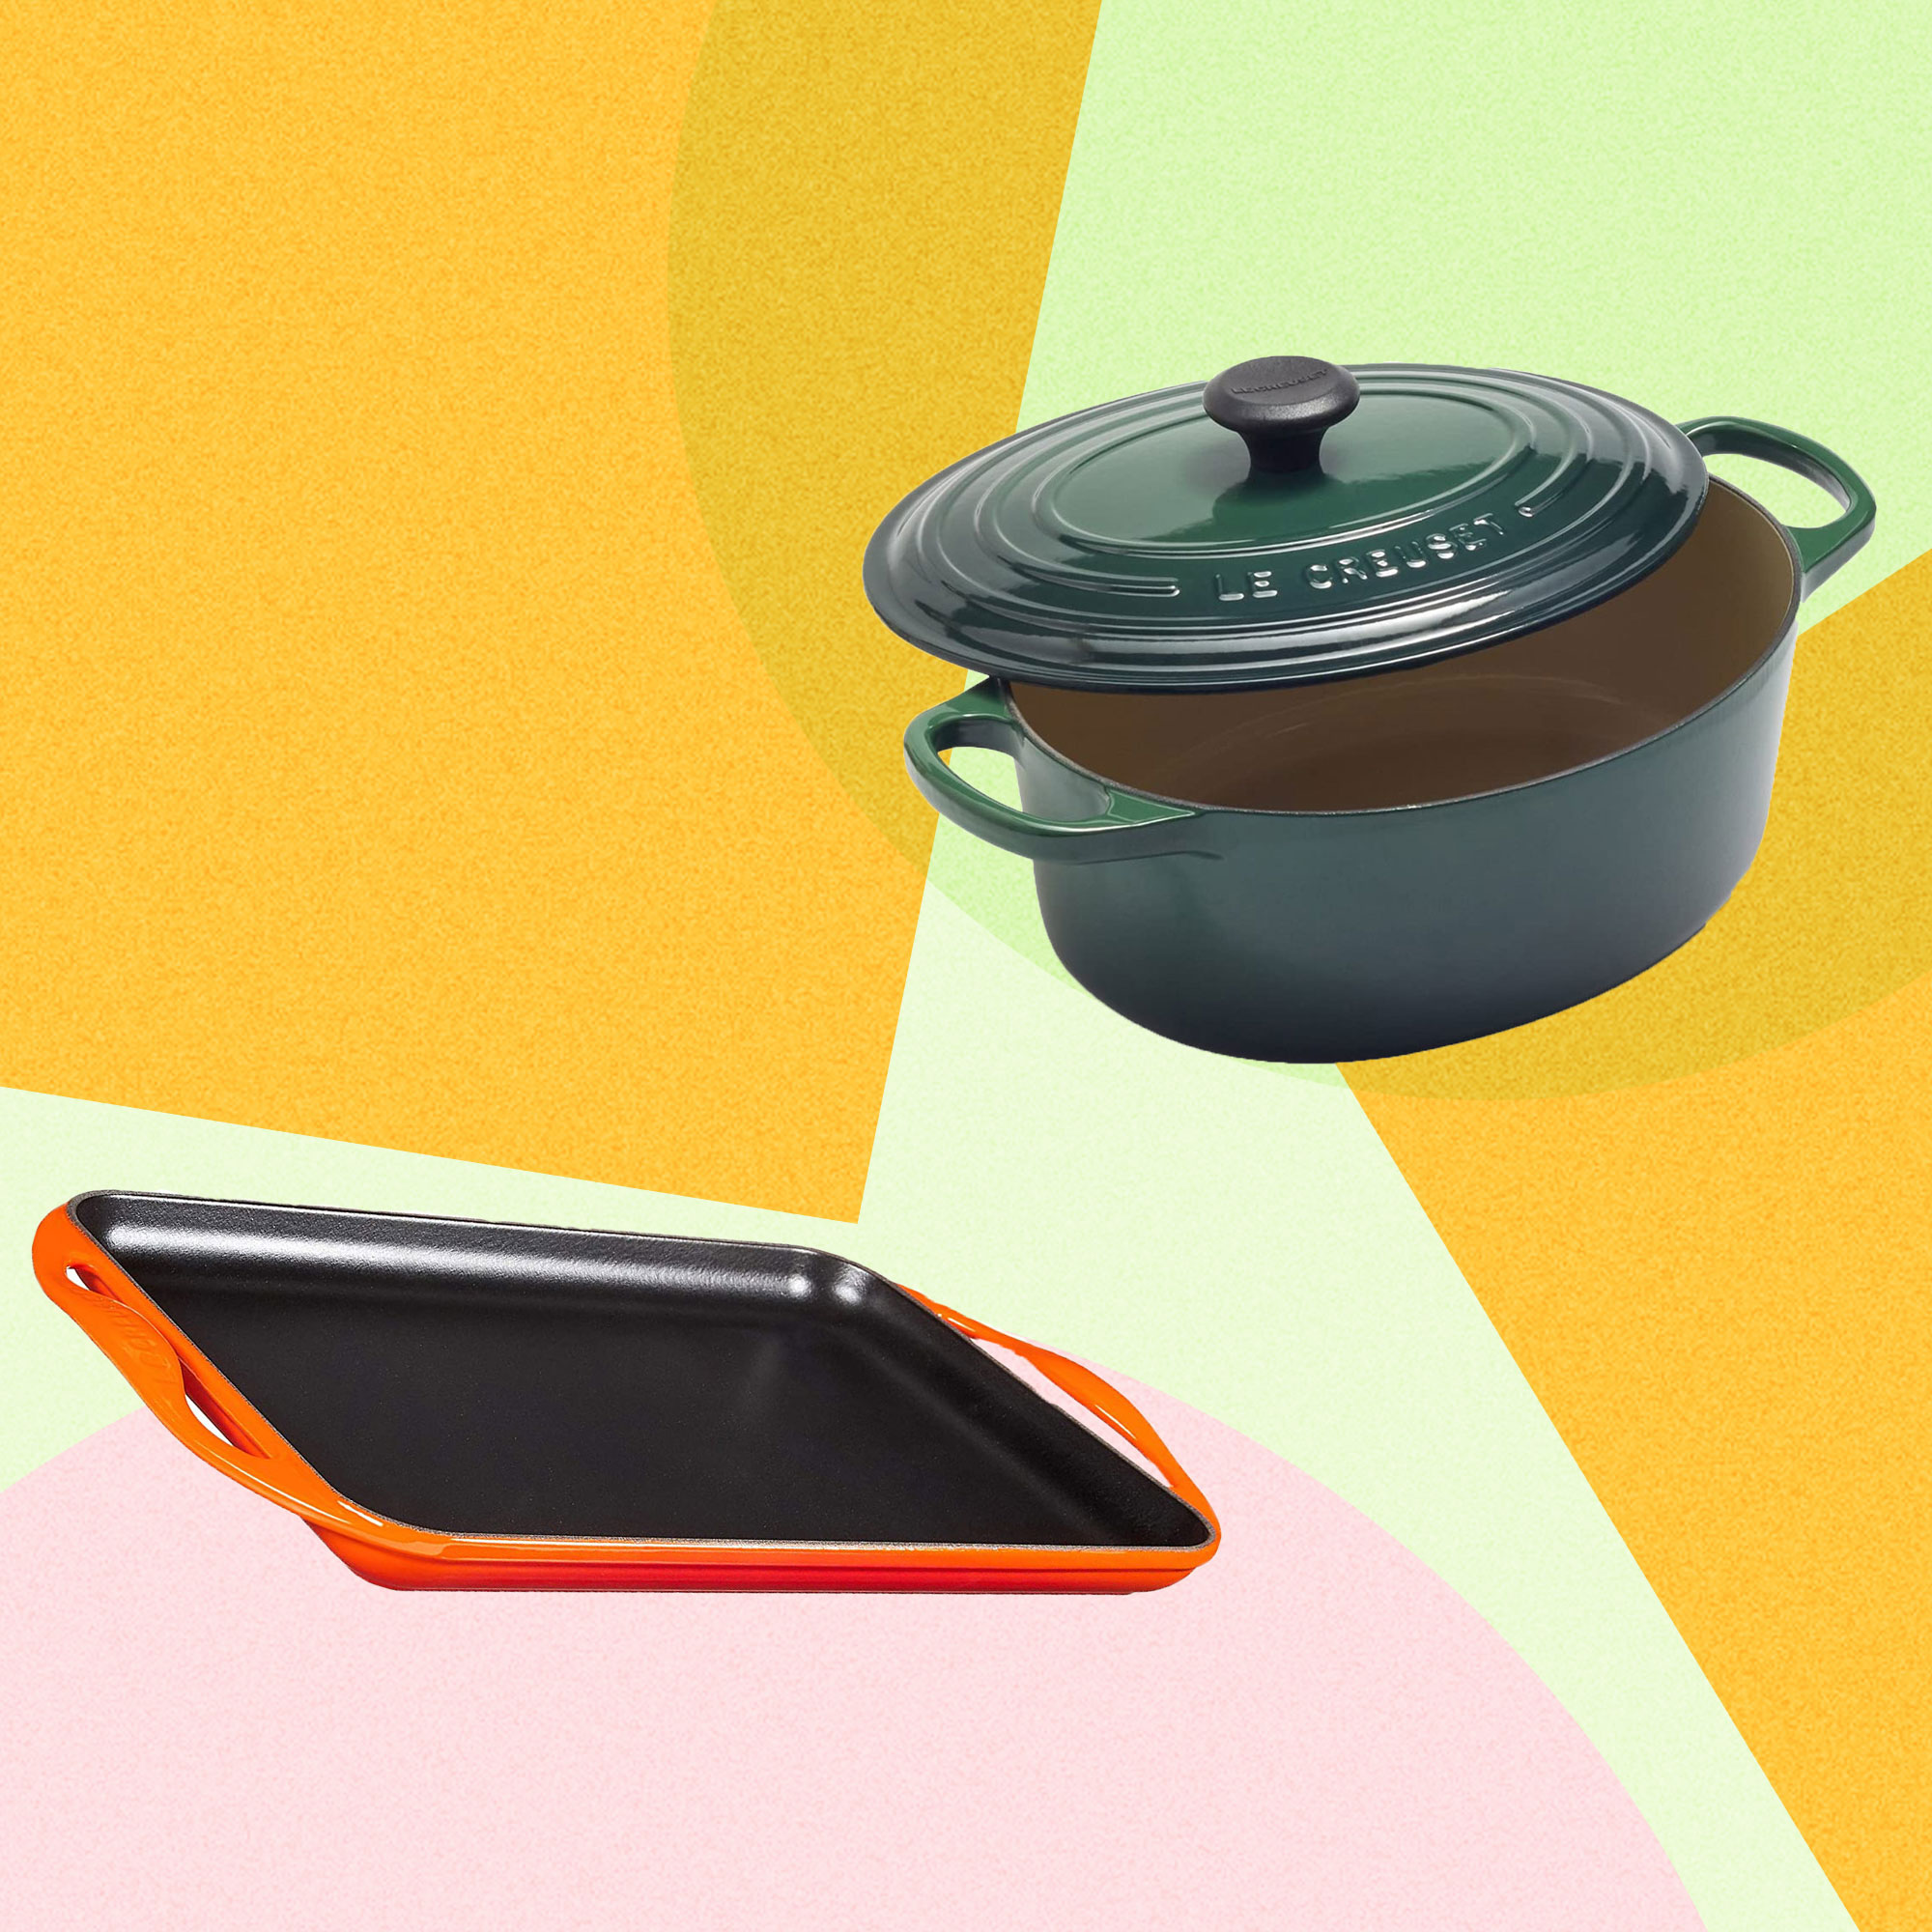 These Le Creuset Products Are at Their Lowest Prices Ever Right Now—Up to 48% Off